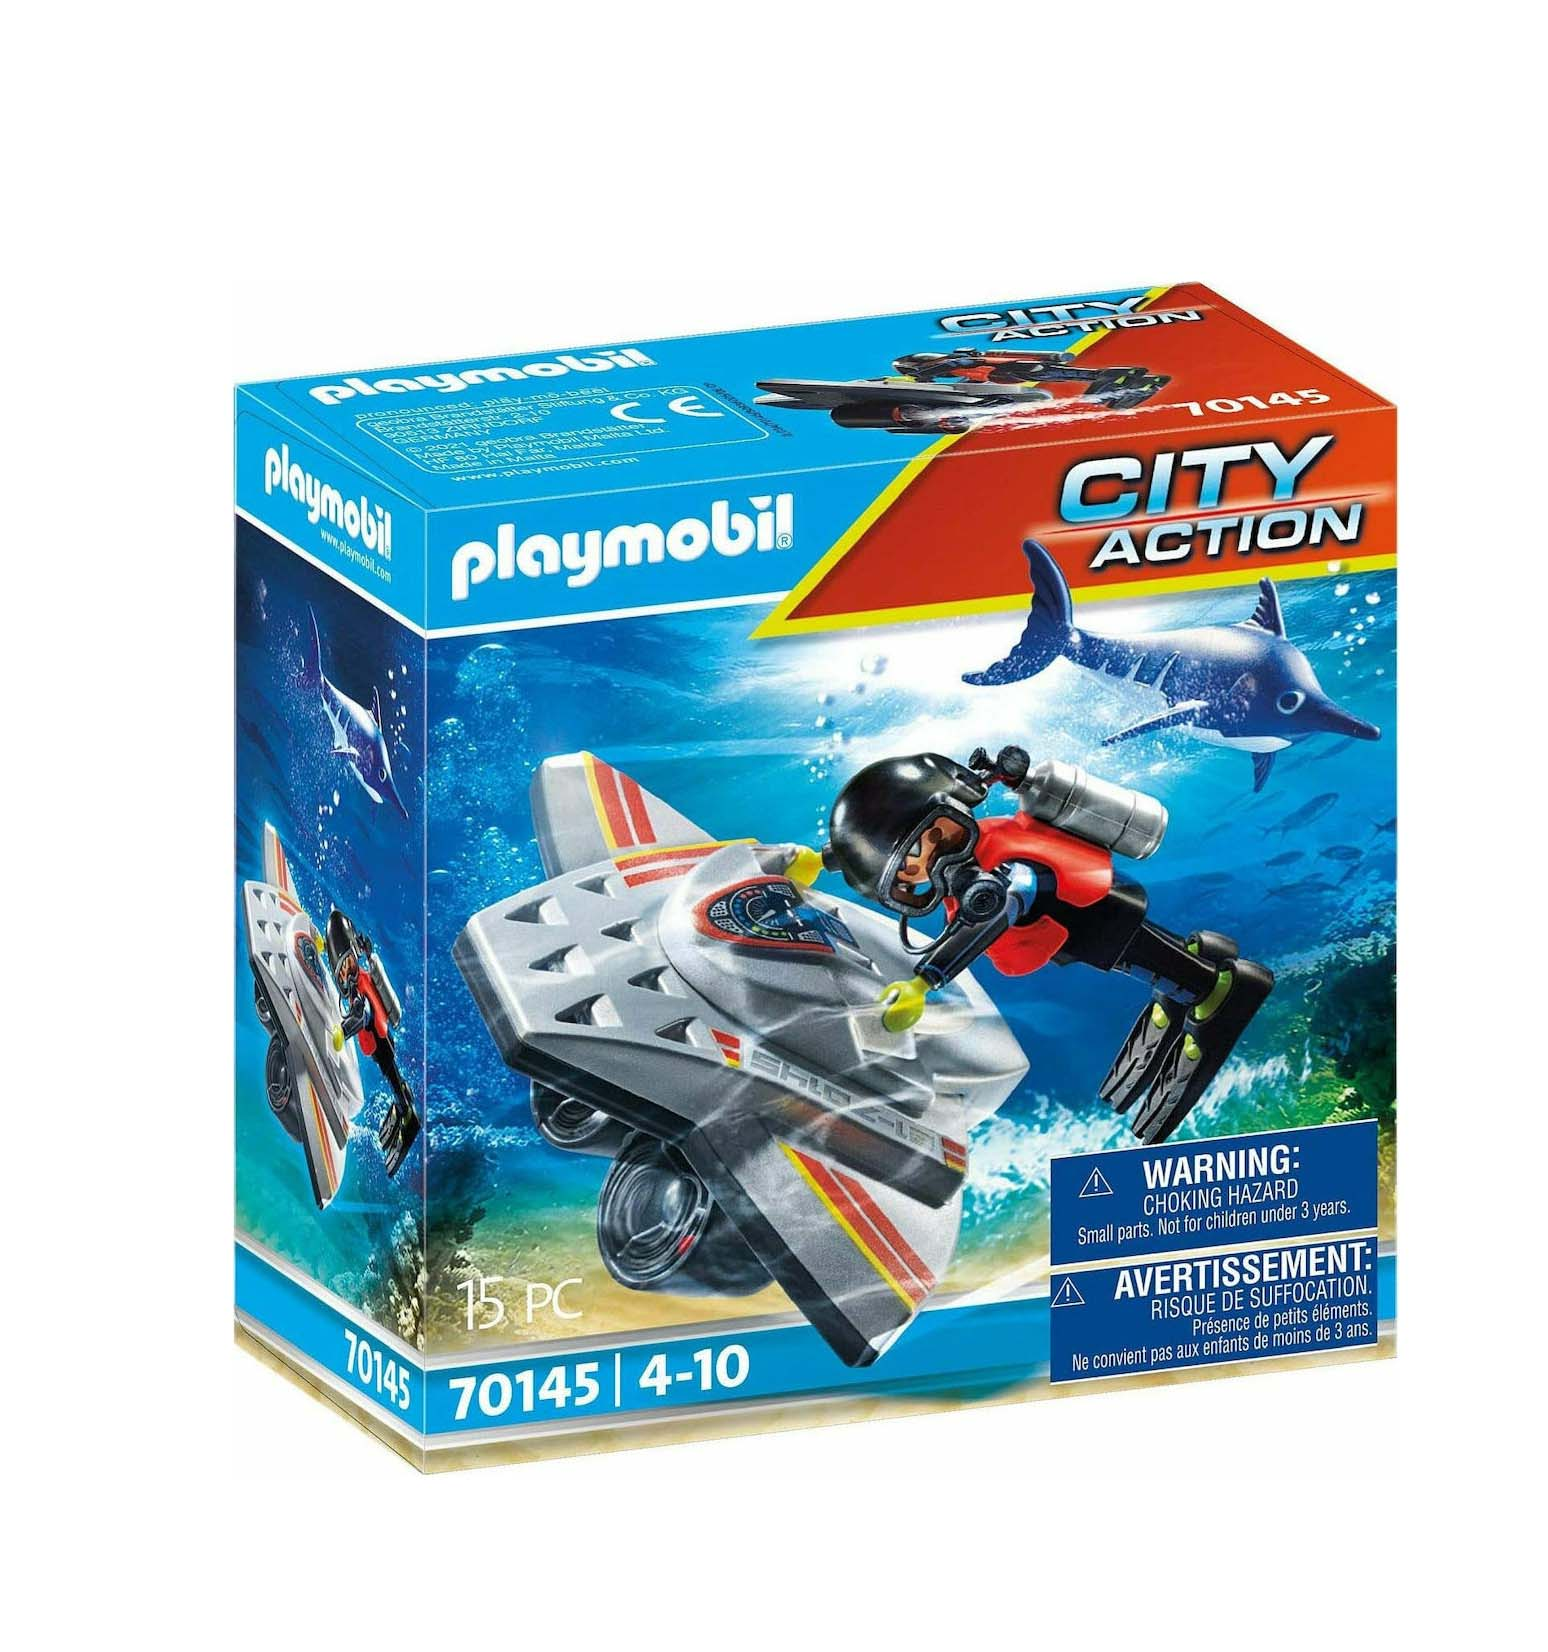 Playmobil City Action: Diving Scooter in Rescue 70145